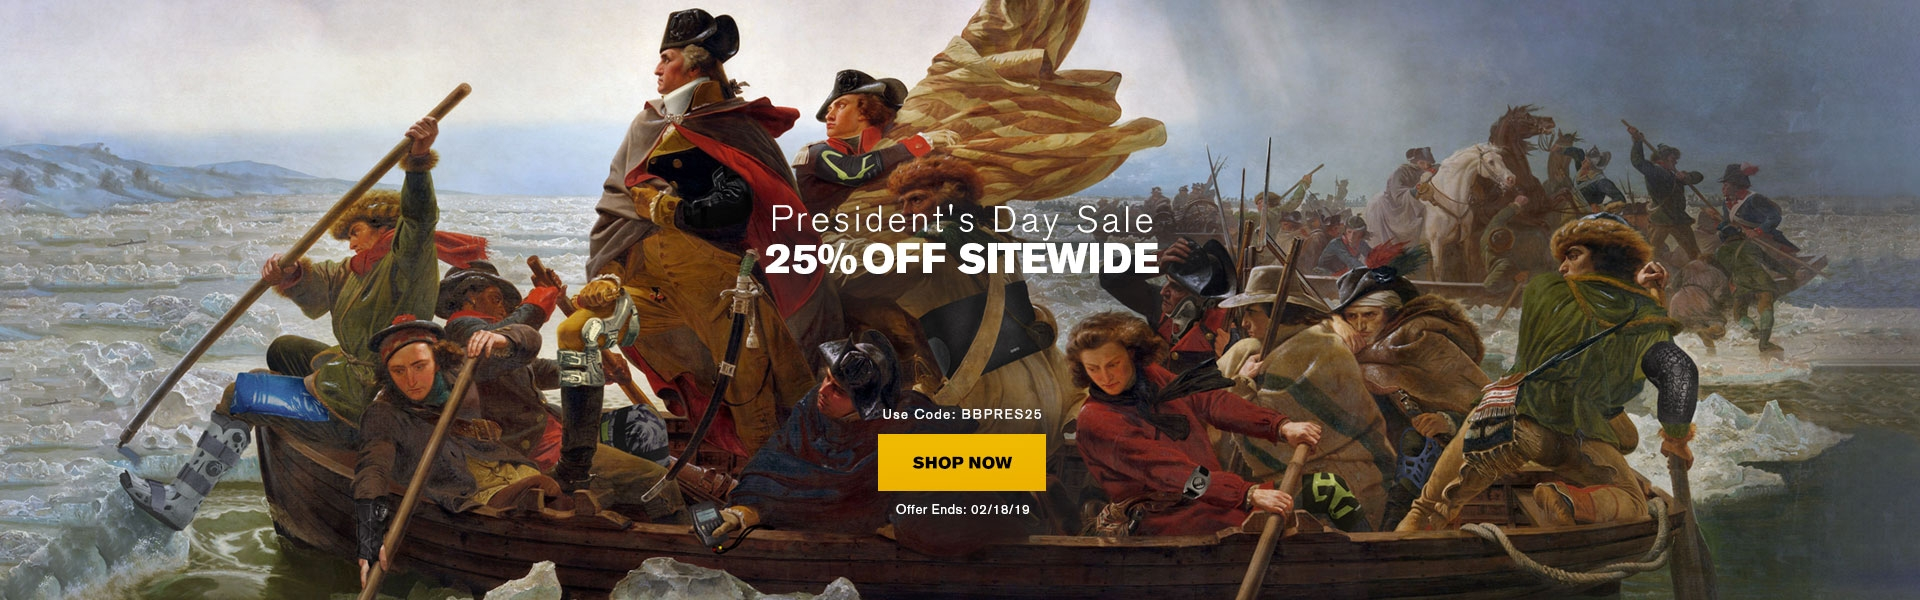 President's Day Sale - 25% Off Sitewide